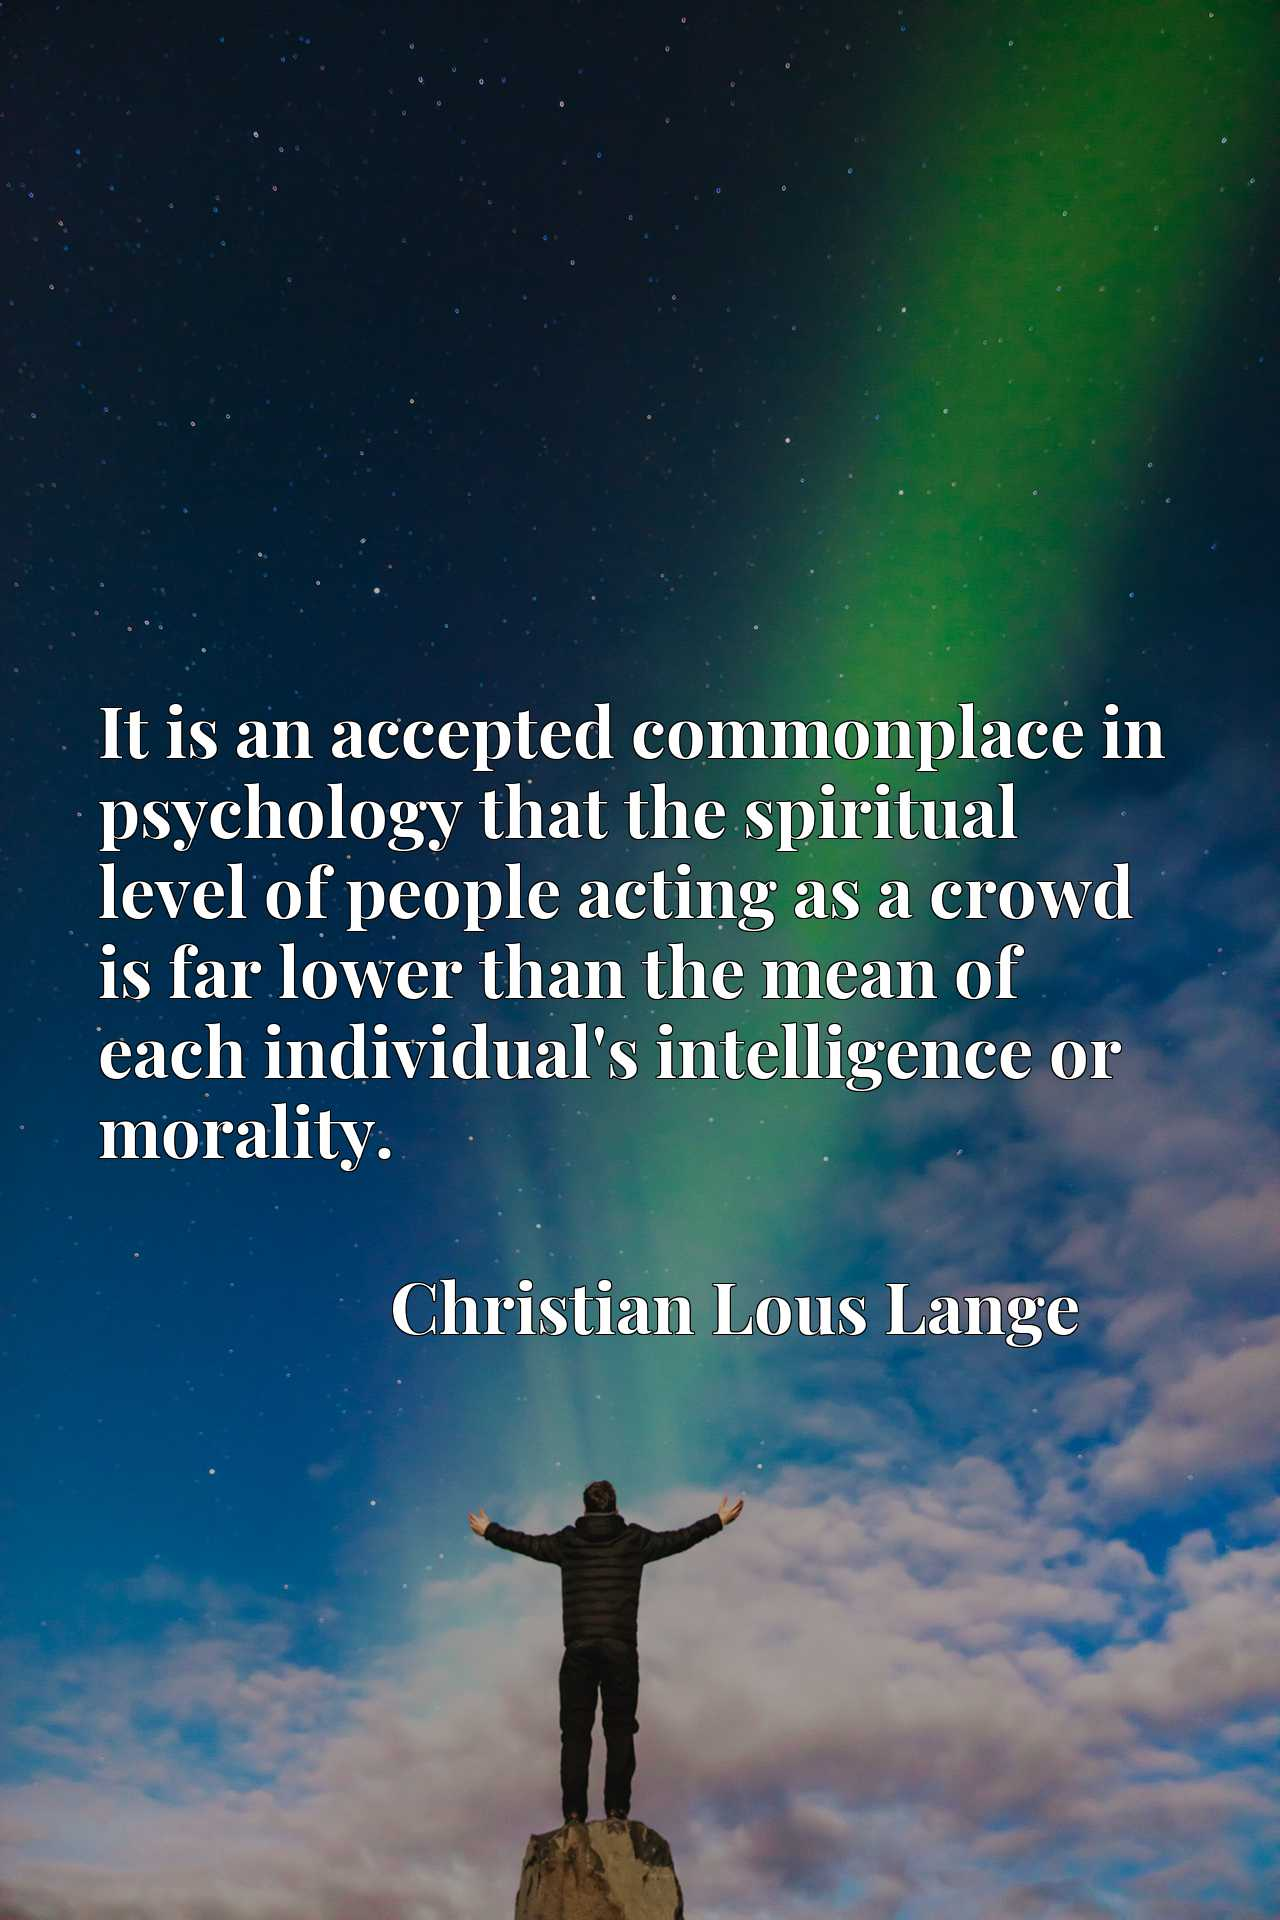 It is an accepted commonplace in psychology that the spiritual level of people acting as a crowd is far lower than the mean of each individual's intelligence or morality.